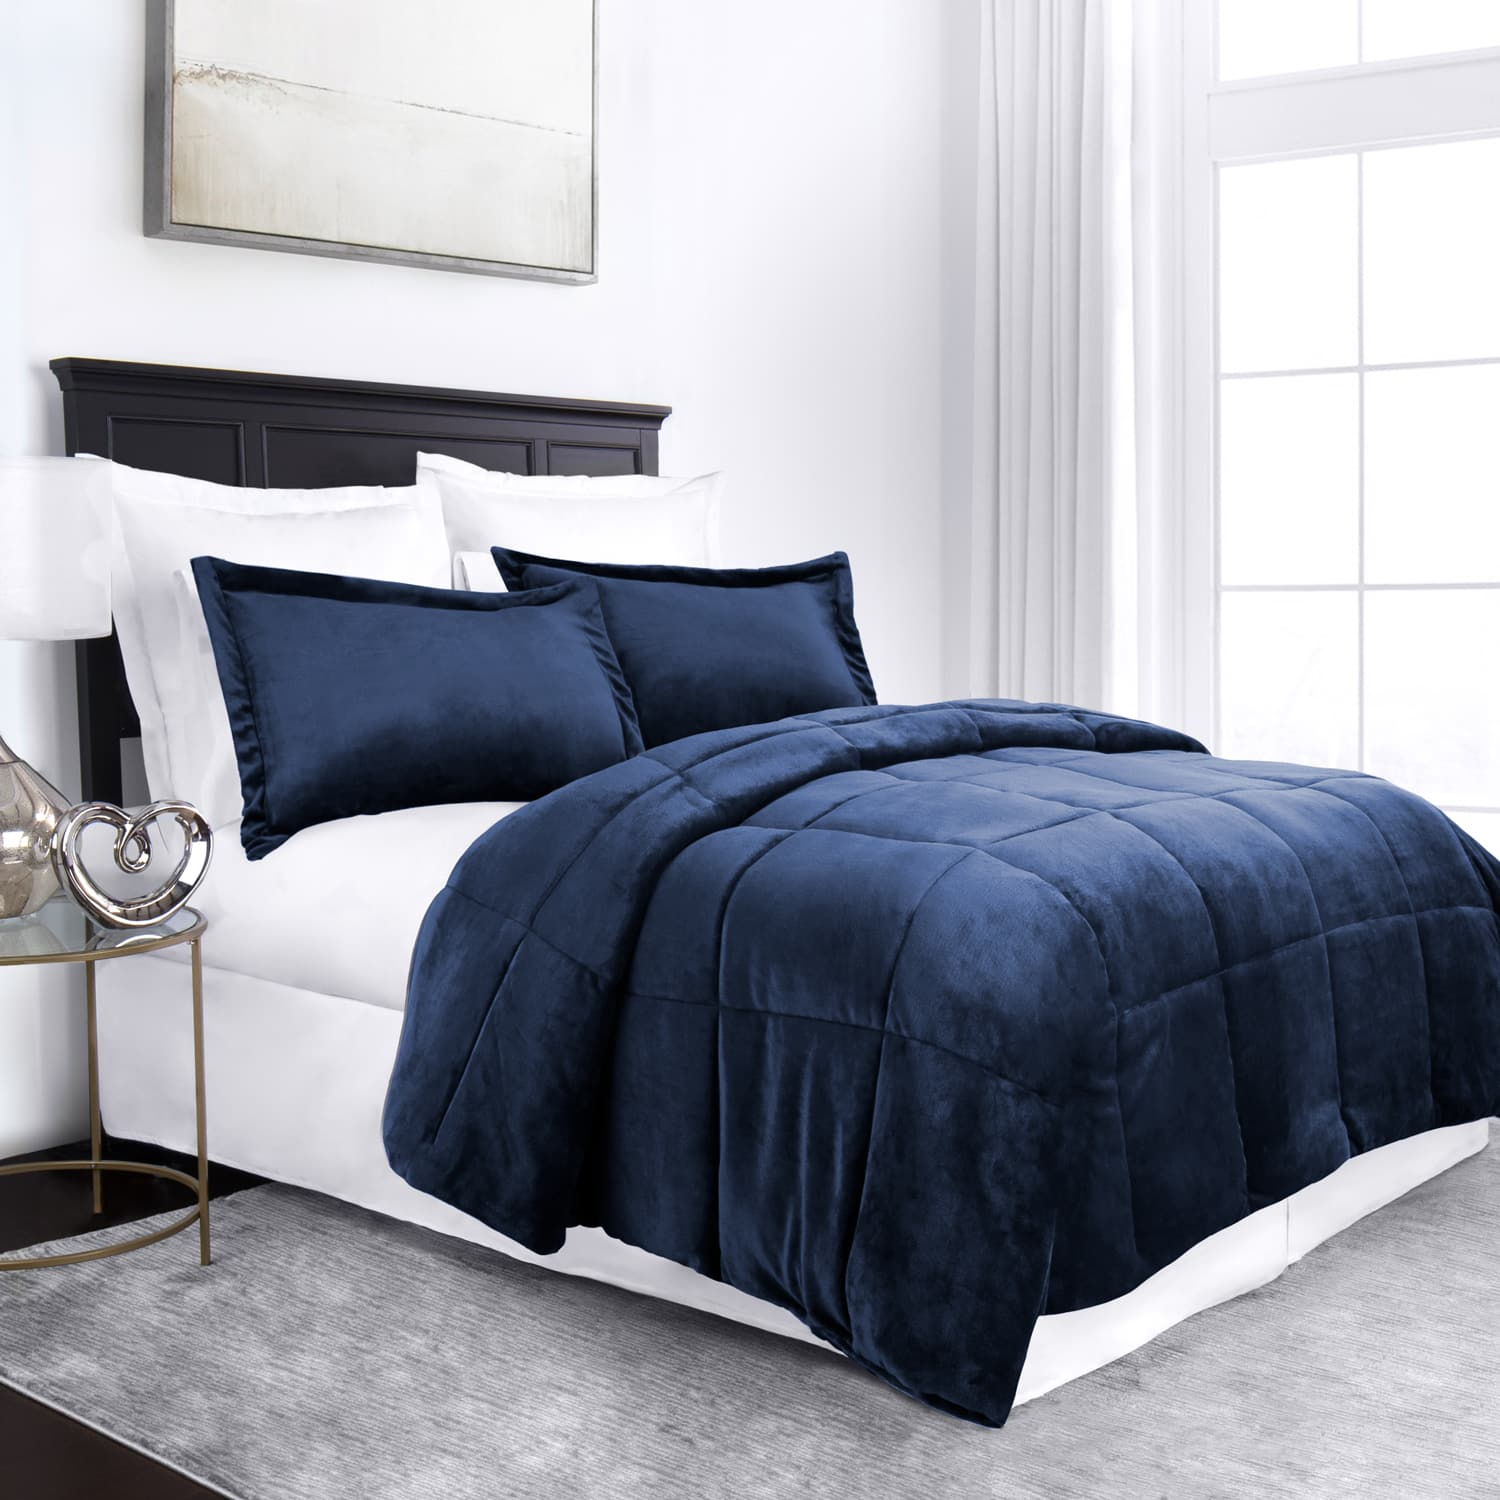 Linens and Hutch 3-Piece Micromink Goose Down Alternative Comforter Starting at $37.44